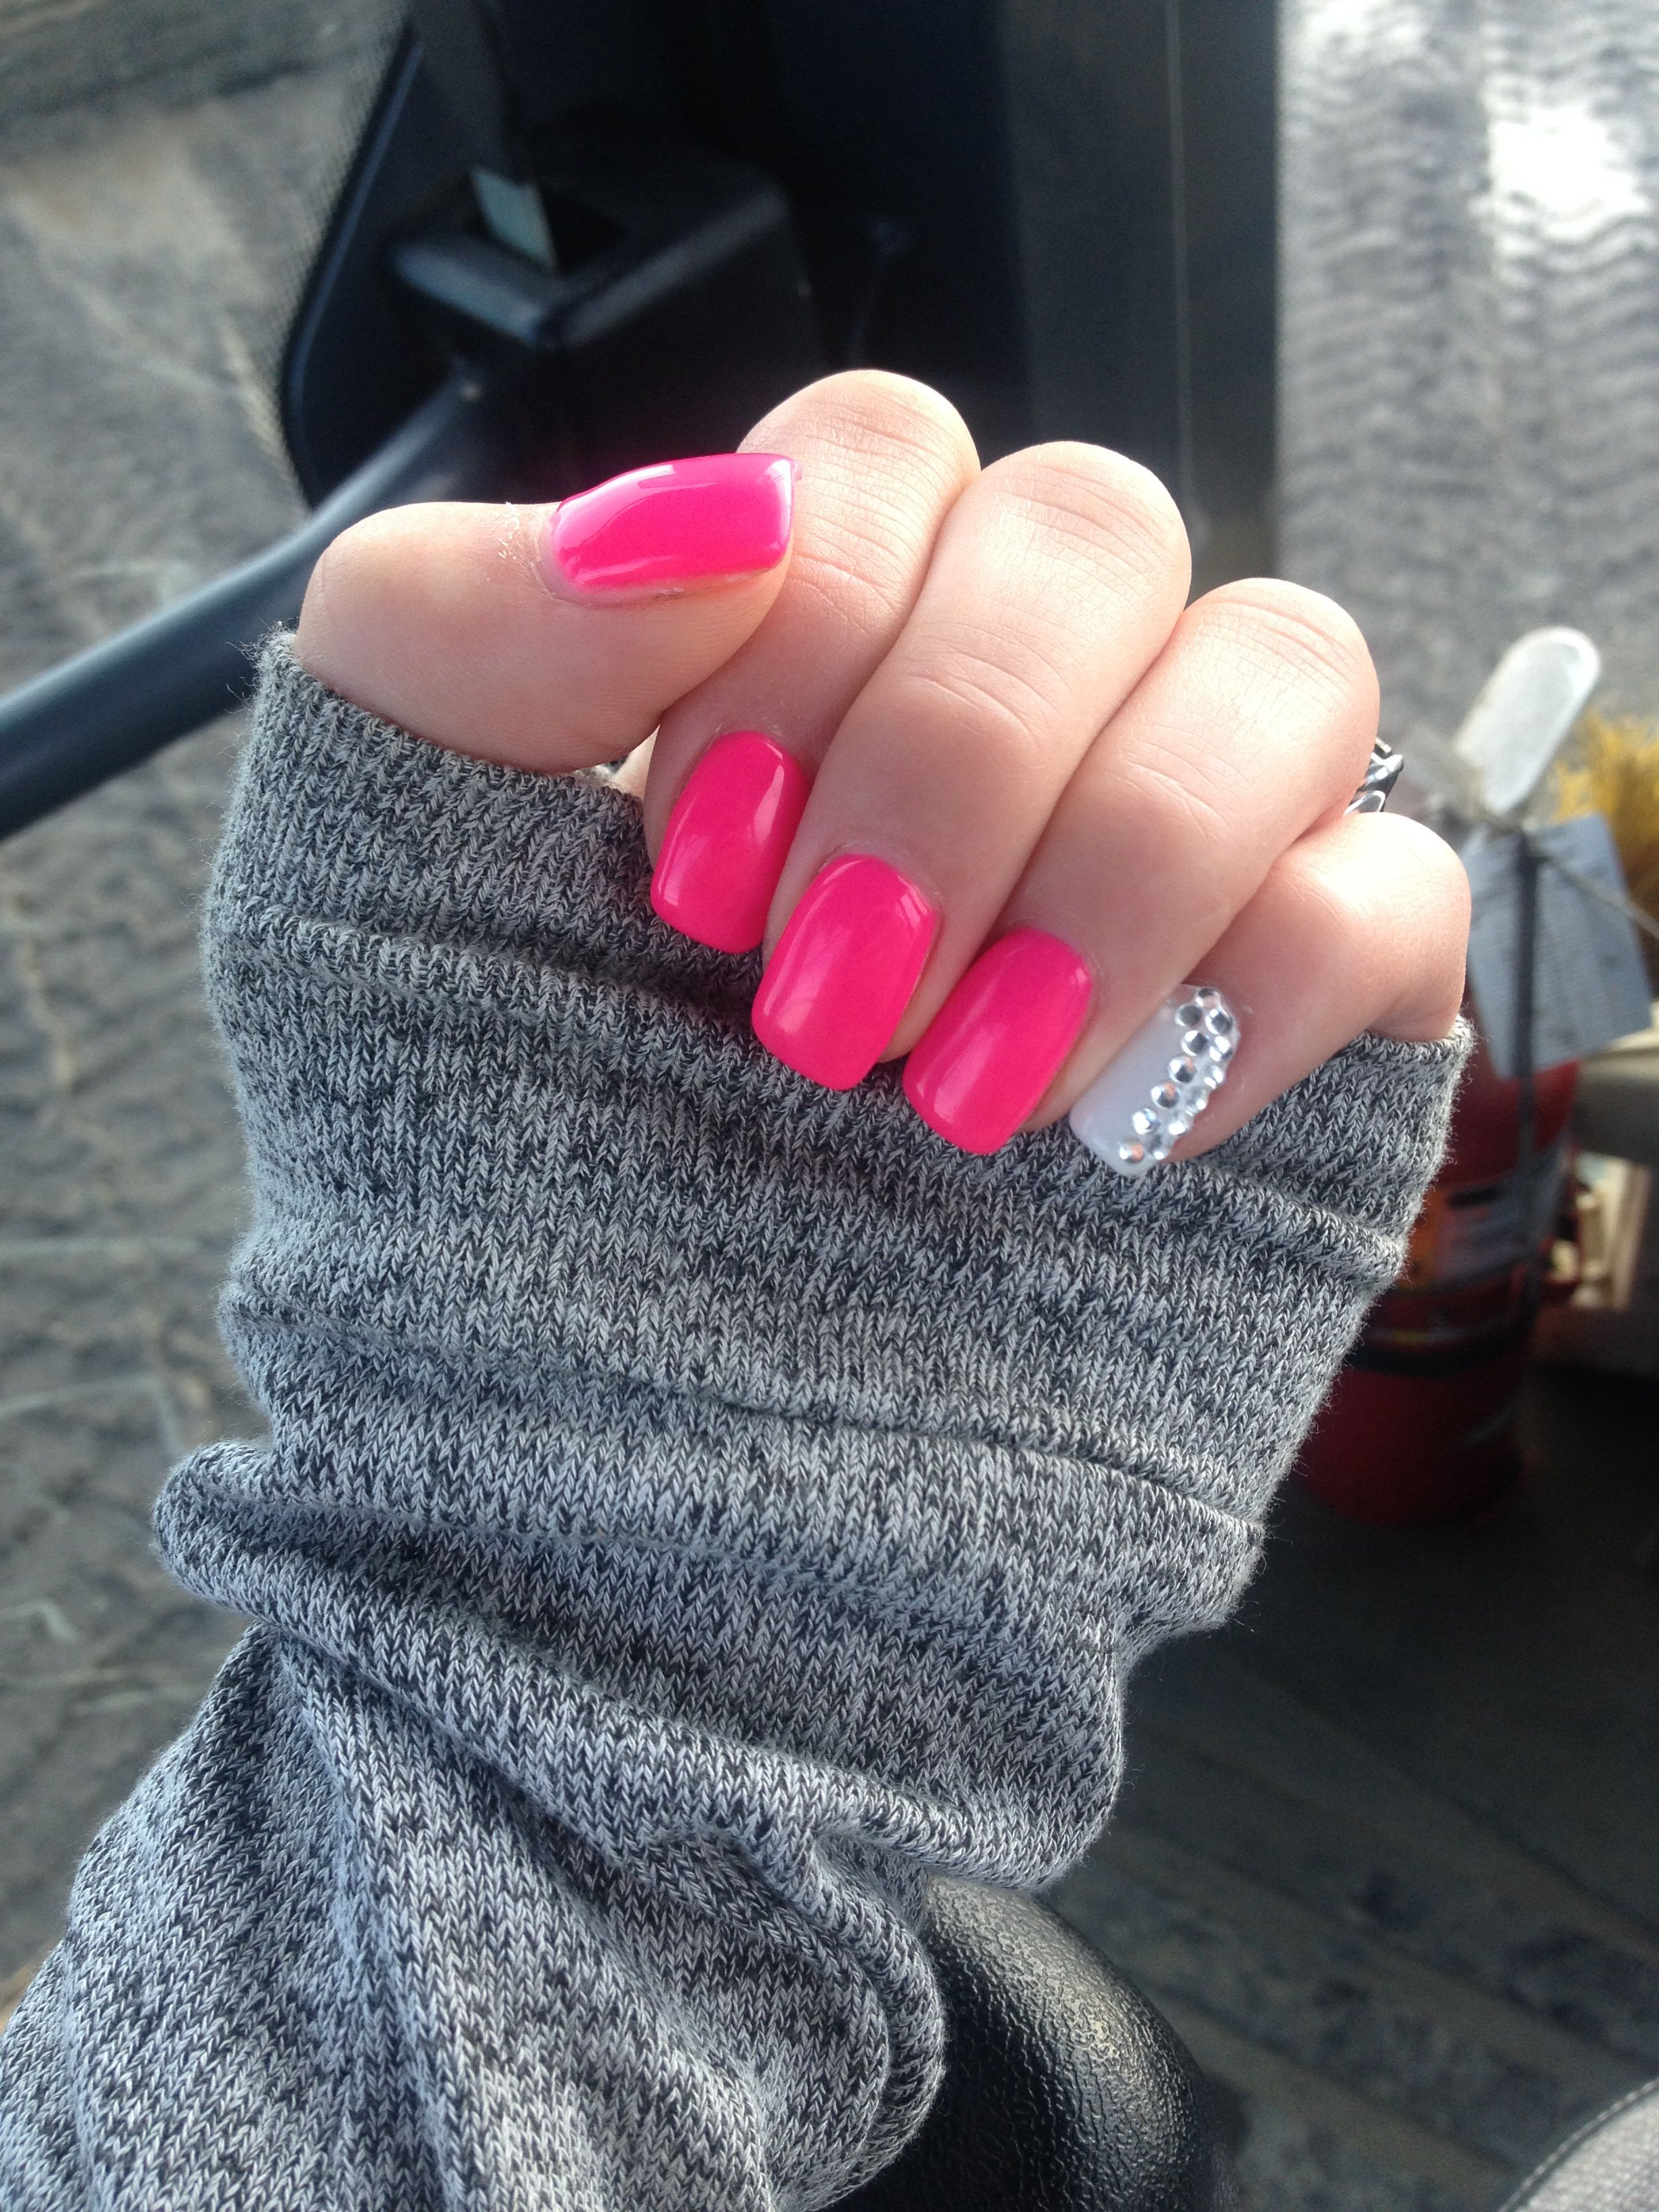 Neon pink nails with accent nail. | Nails | Pinterest | Neon pink ...